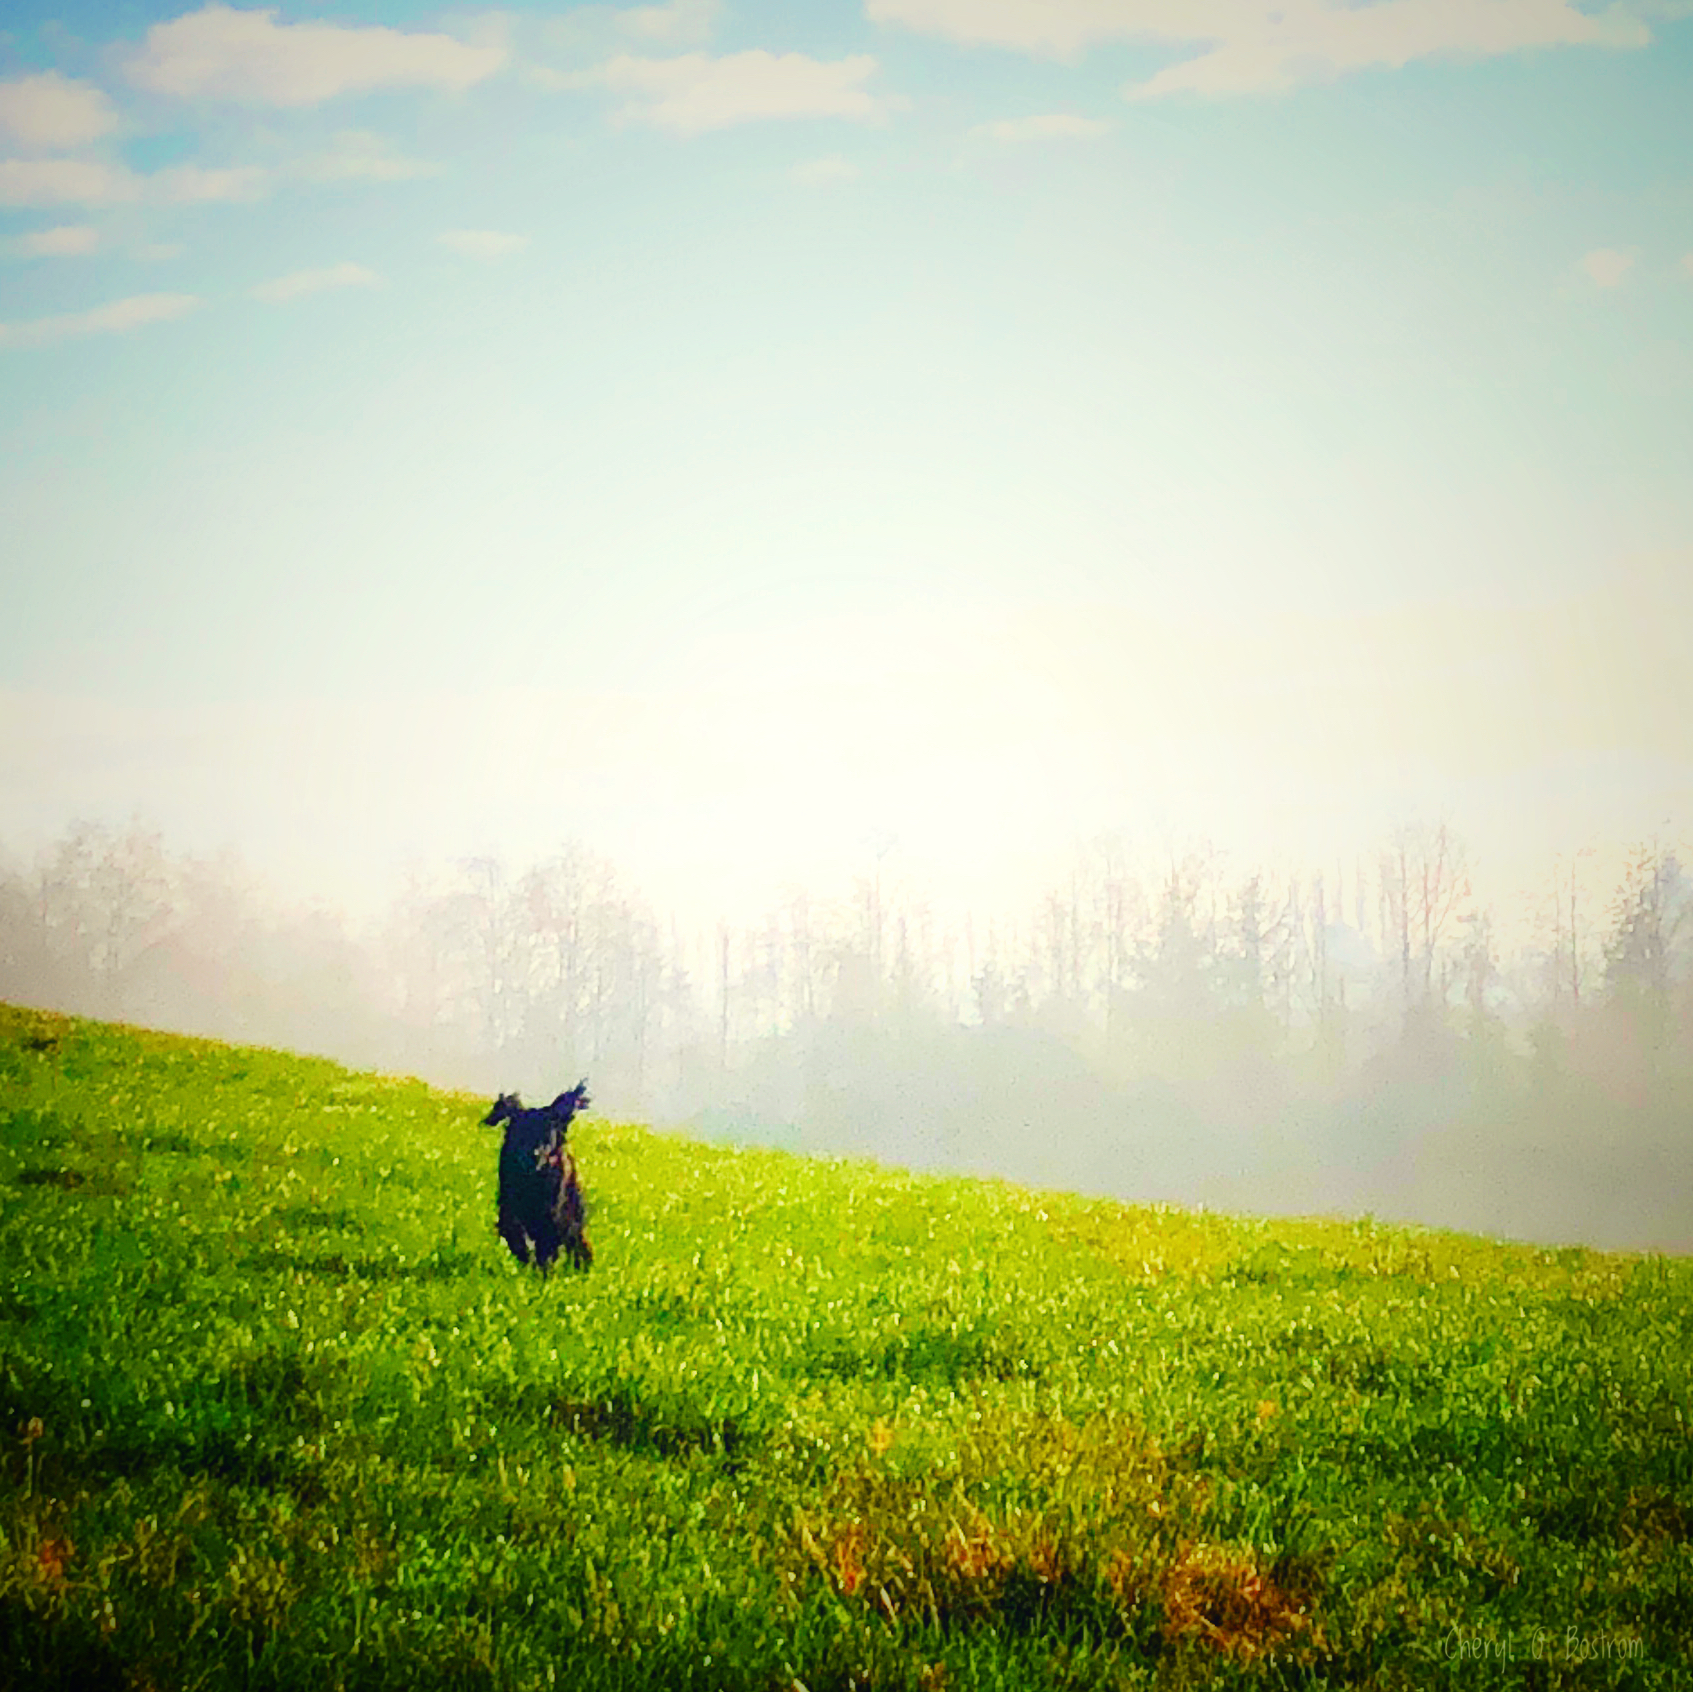 Dog-leaves-fog-for-green-field